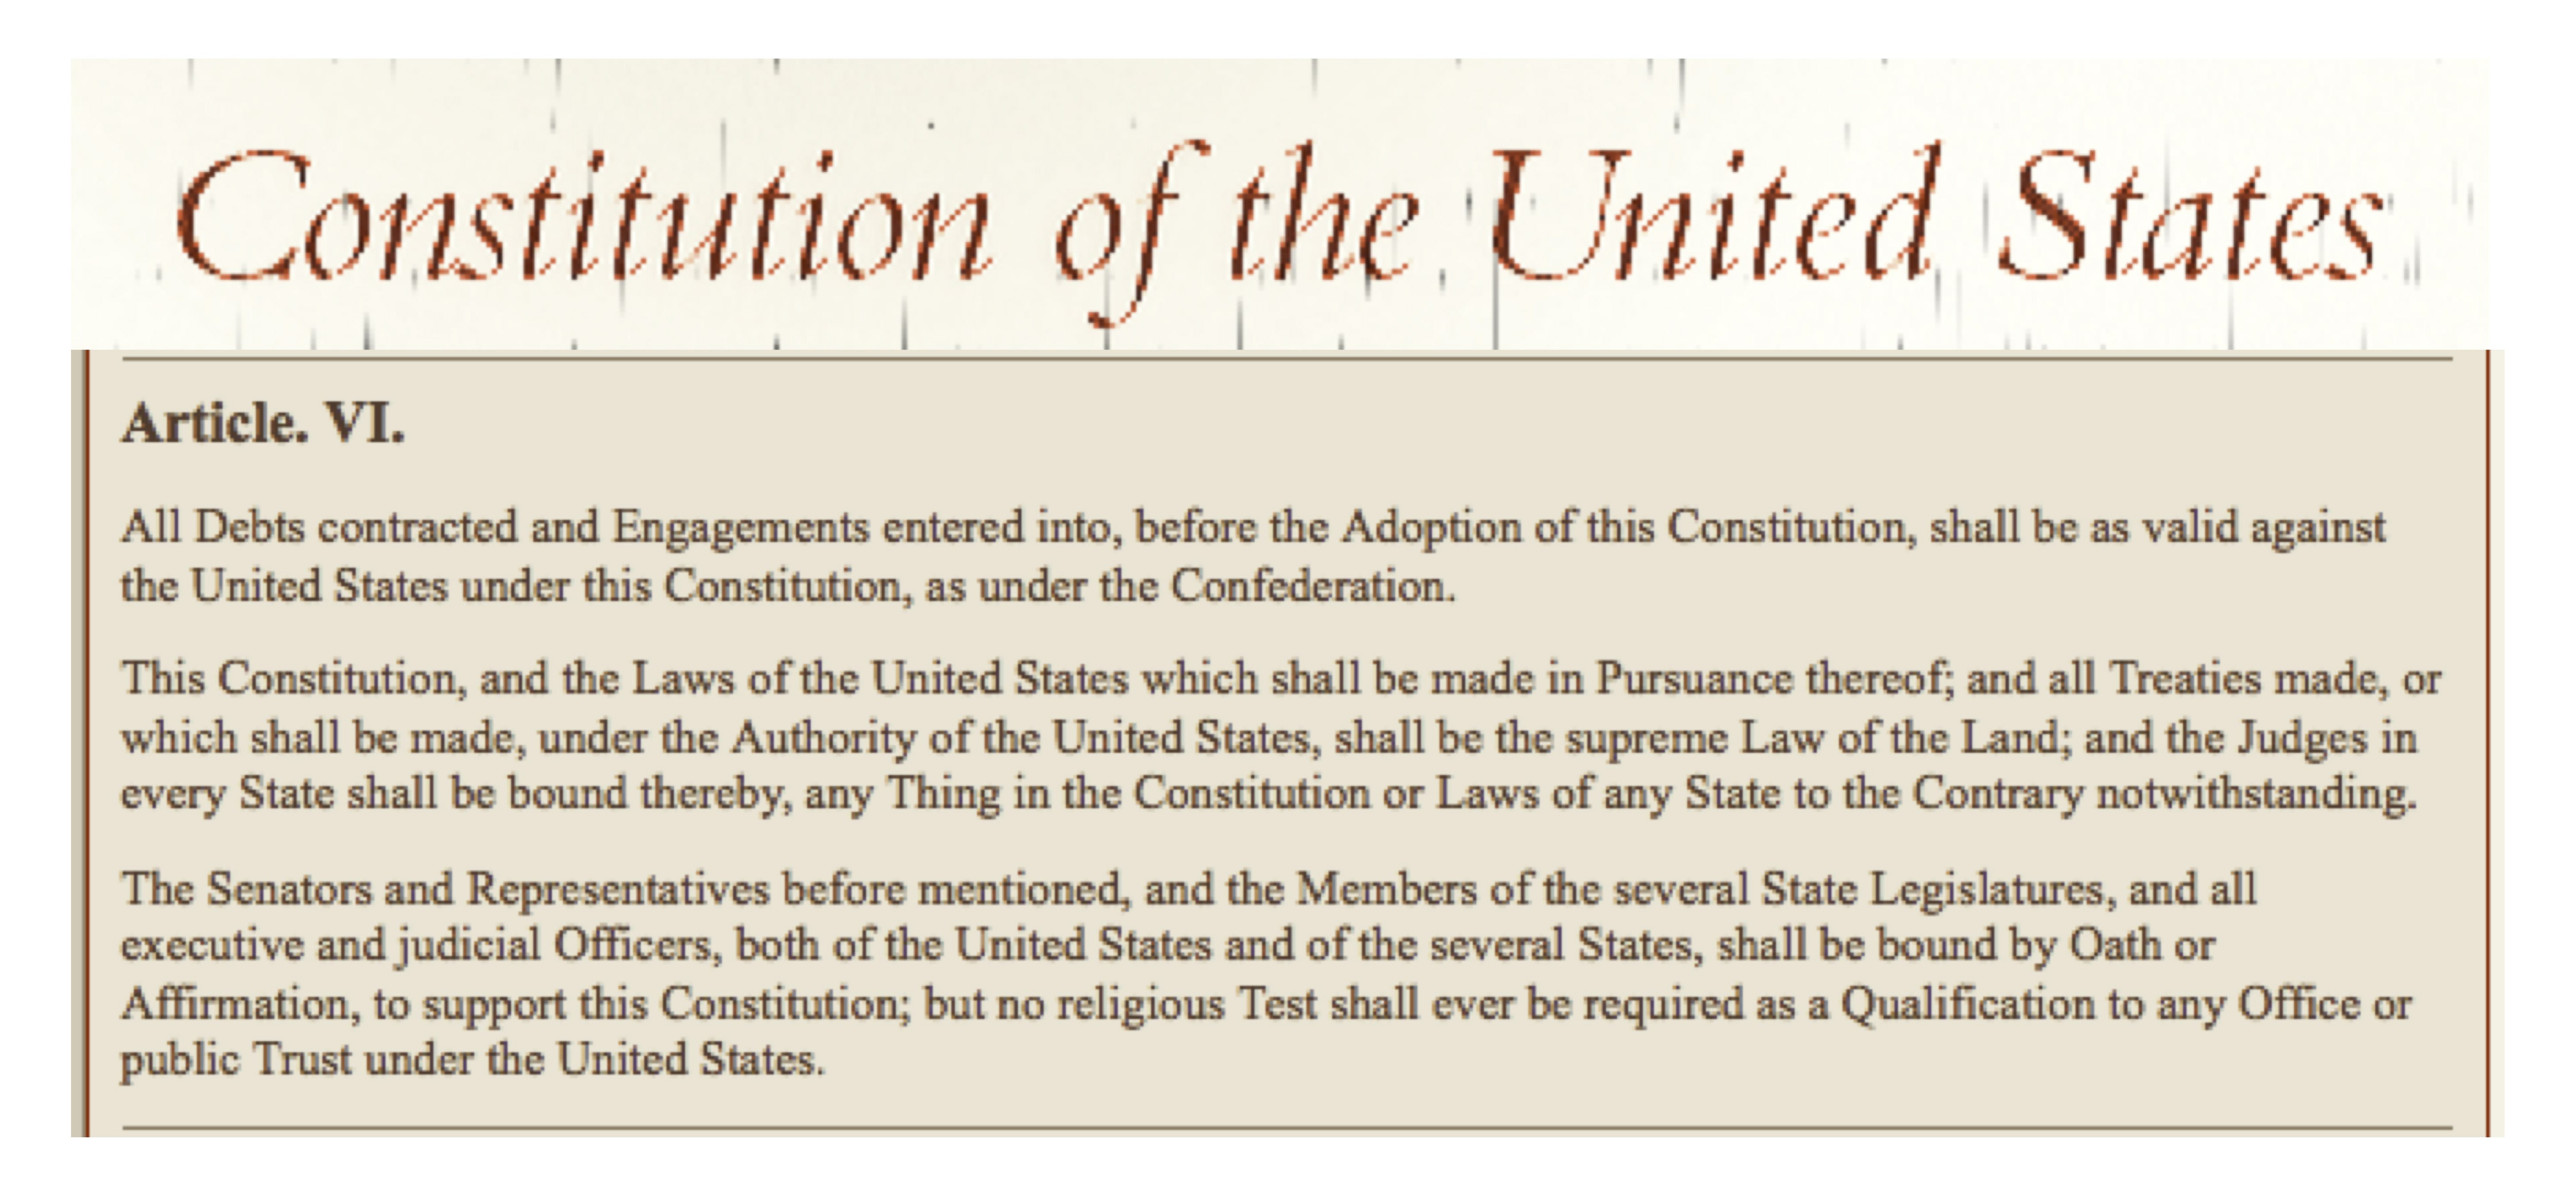 a history and characteristics of the united states constitution They are the first three words in the preamble of the united states constitution, the supreme law of the land adopted on september 17, 1787, the constitution has been the backbone of a country founded on a unique form of government, namely of the people, by the people, and for the people.